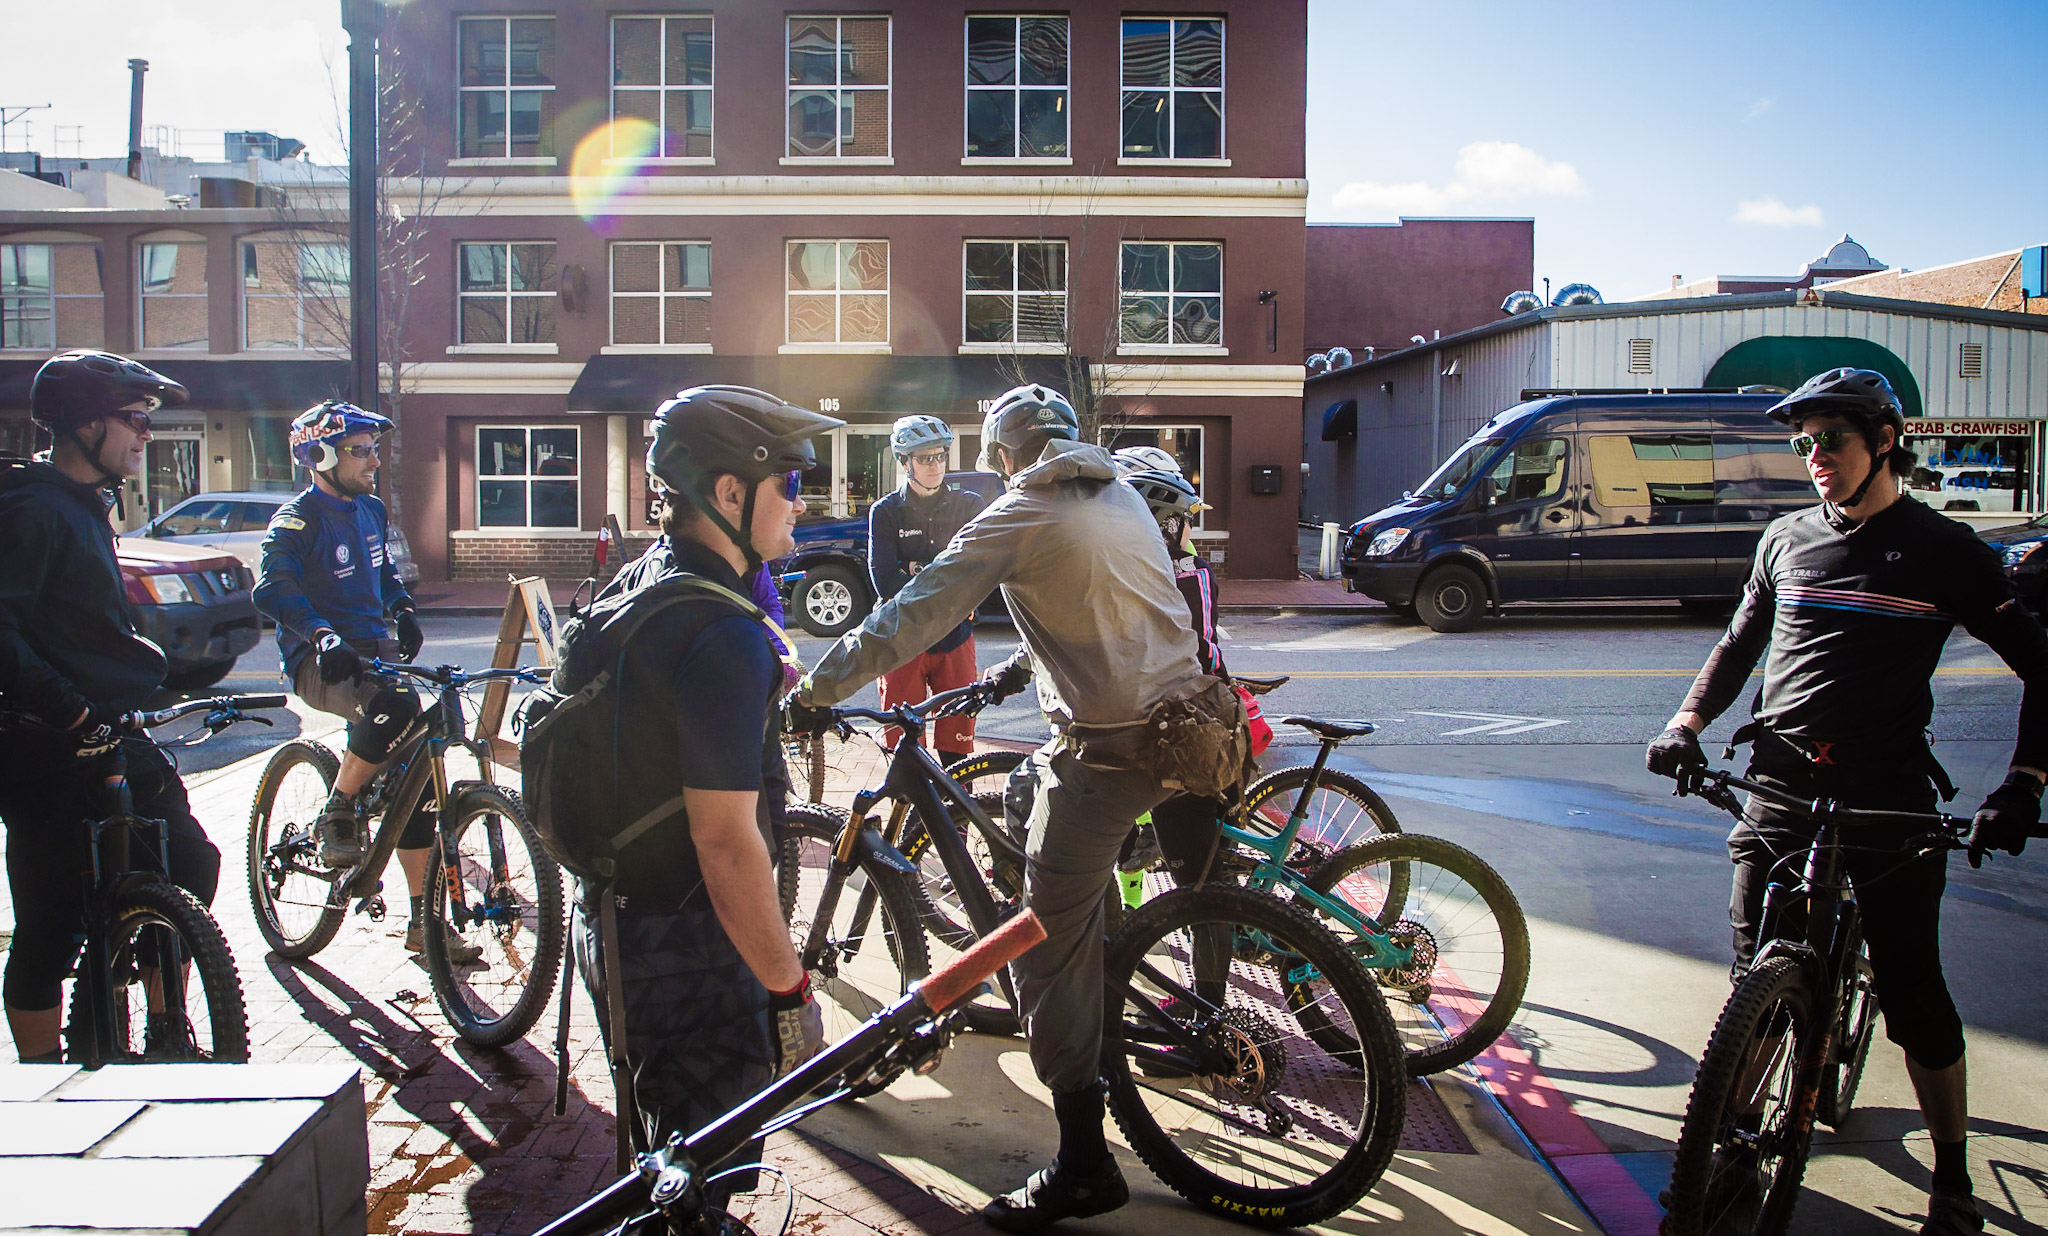 World class riding! - So much can happen when a curated group of like-minded, passionate people gather together. Develop meaningful connections with others during the eBike demos, bike rides, scavenger hunt and evening libations.